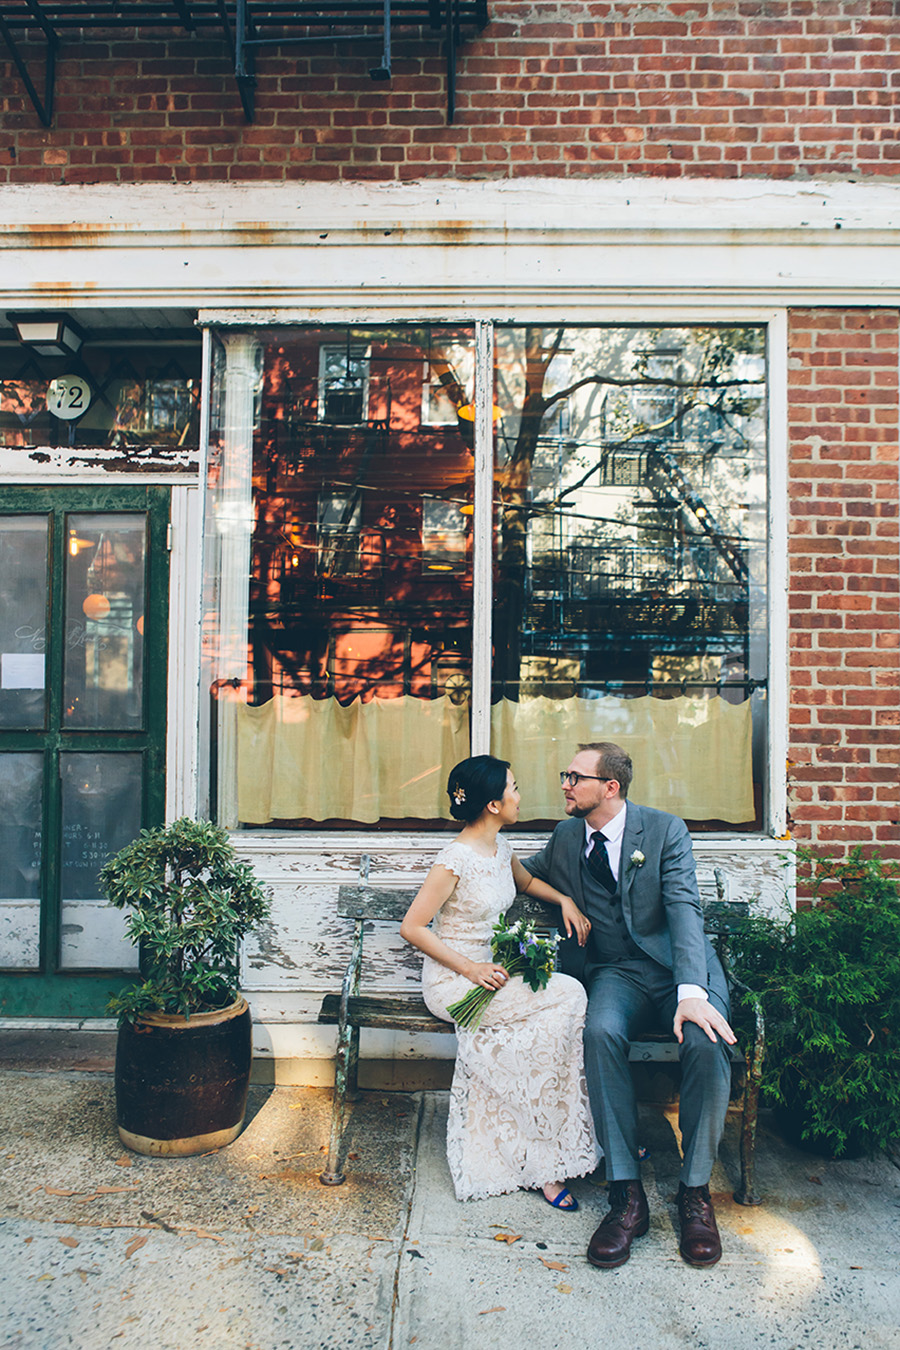 NEW-YORK-CITY-WEDDING-PHOTOGRAPHER-VINEGAR-HILL-HOUSE-INTIMATE-DUMBO-WEDDING-ELOPEMENT-MANHATTAN-BROOKLYN-WEDDING-PHOTOGRAPHY-0024.jpg